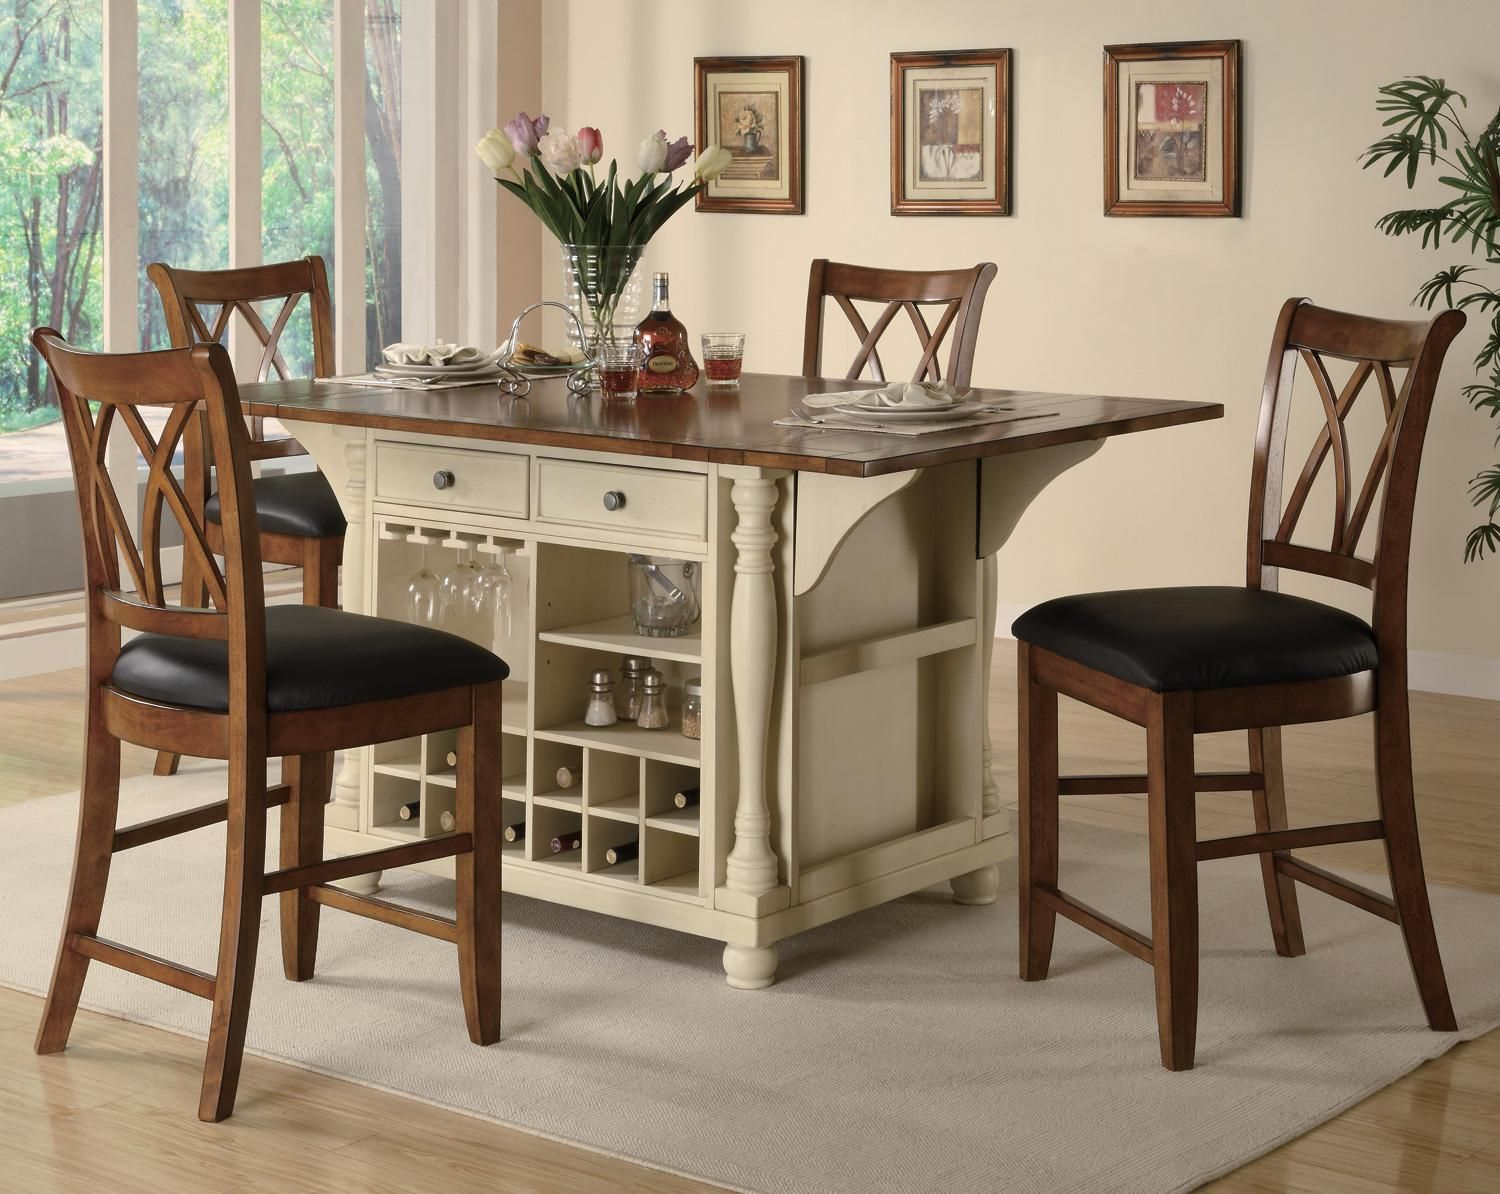 Schmale Kücheninsel Tall Kitchen Table And Chairs Dinette Sets Kitchen Table